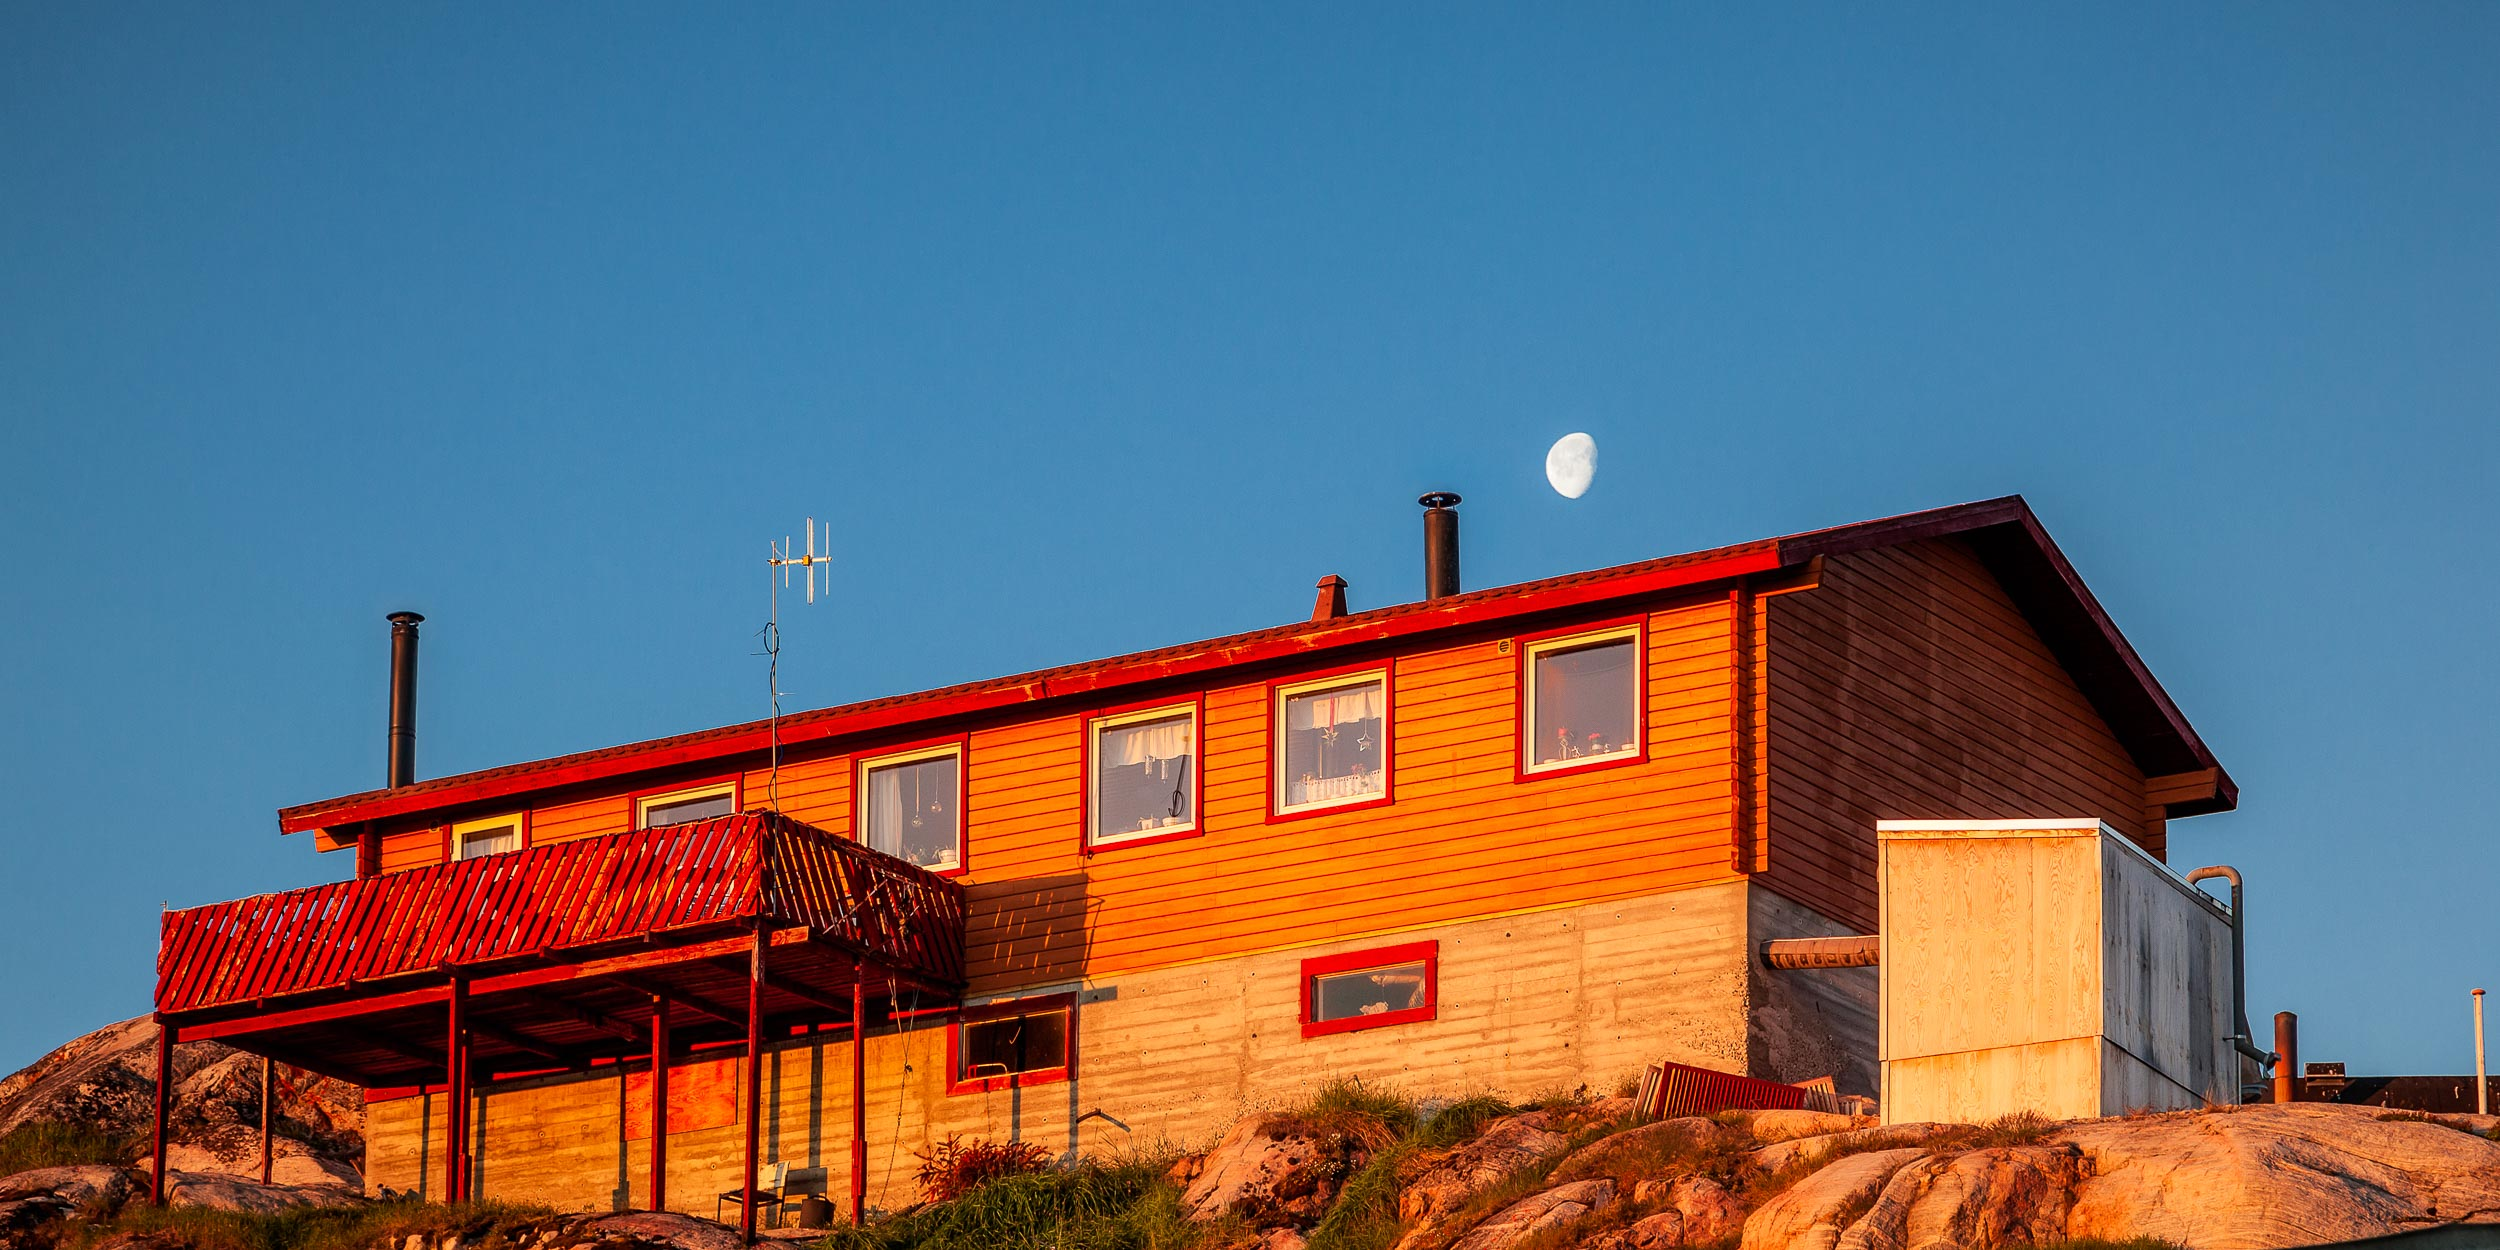 A house, glowing in the warm light of sunrise, in the town of  Ilulissat, Greenland .